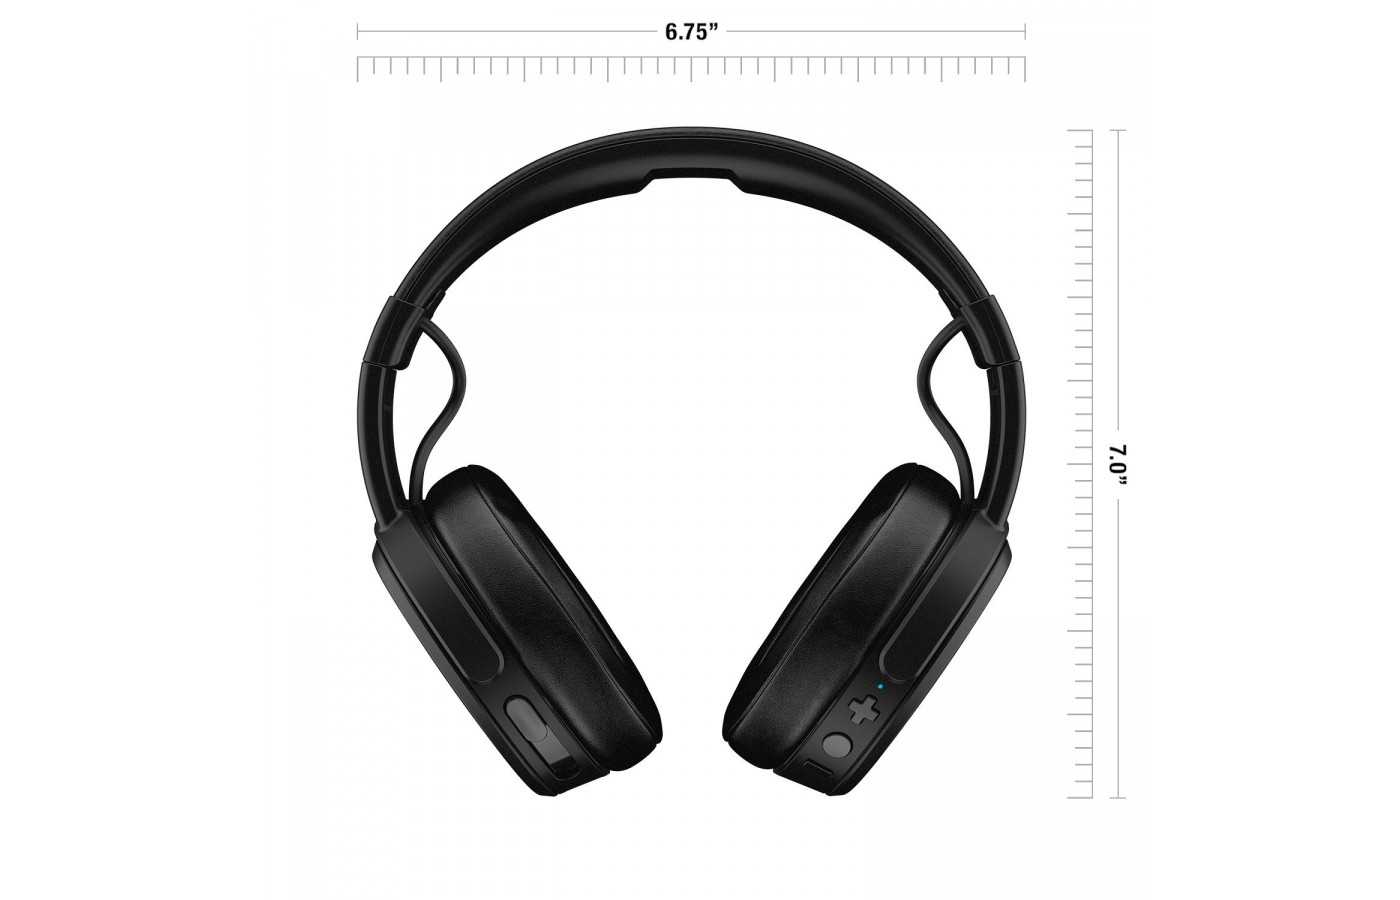 These headphones have extra padding to ensure stability and comfort.